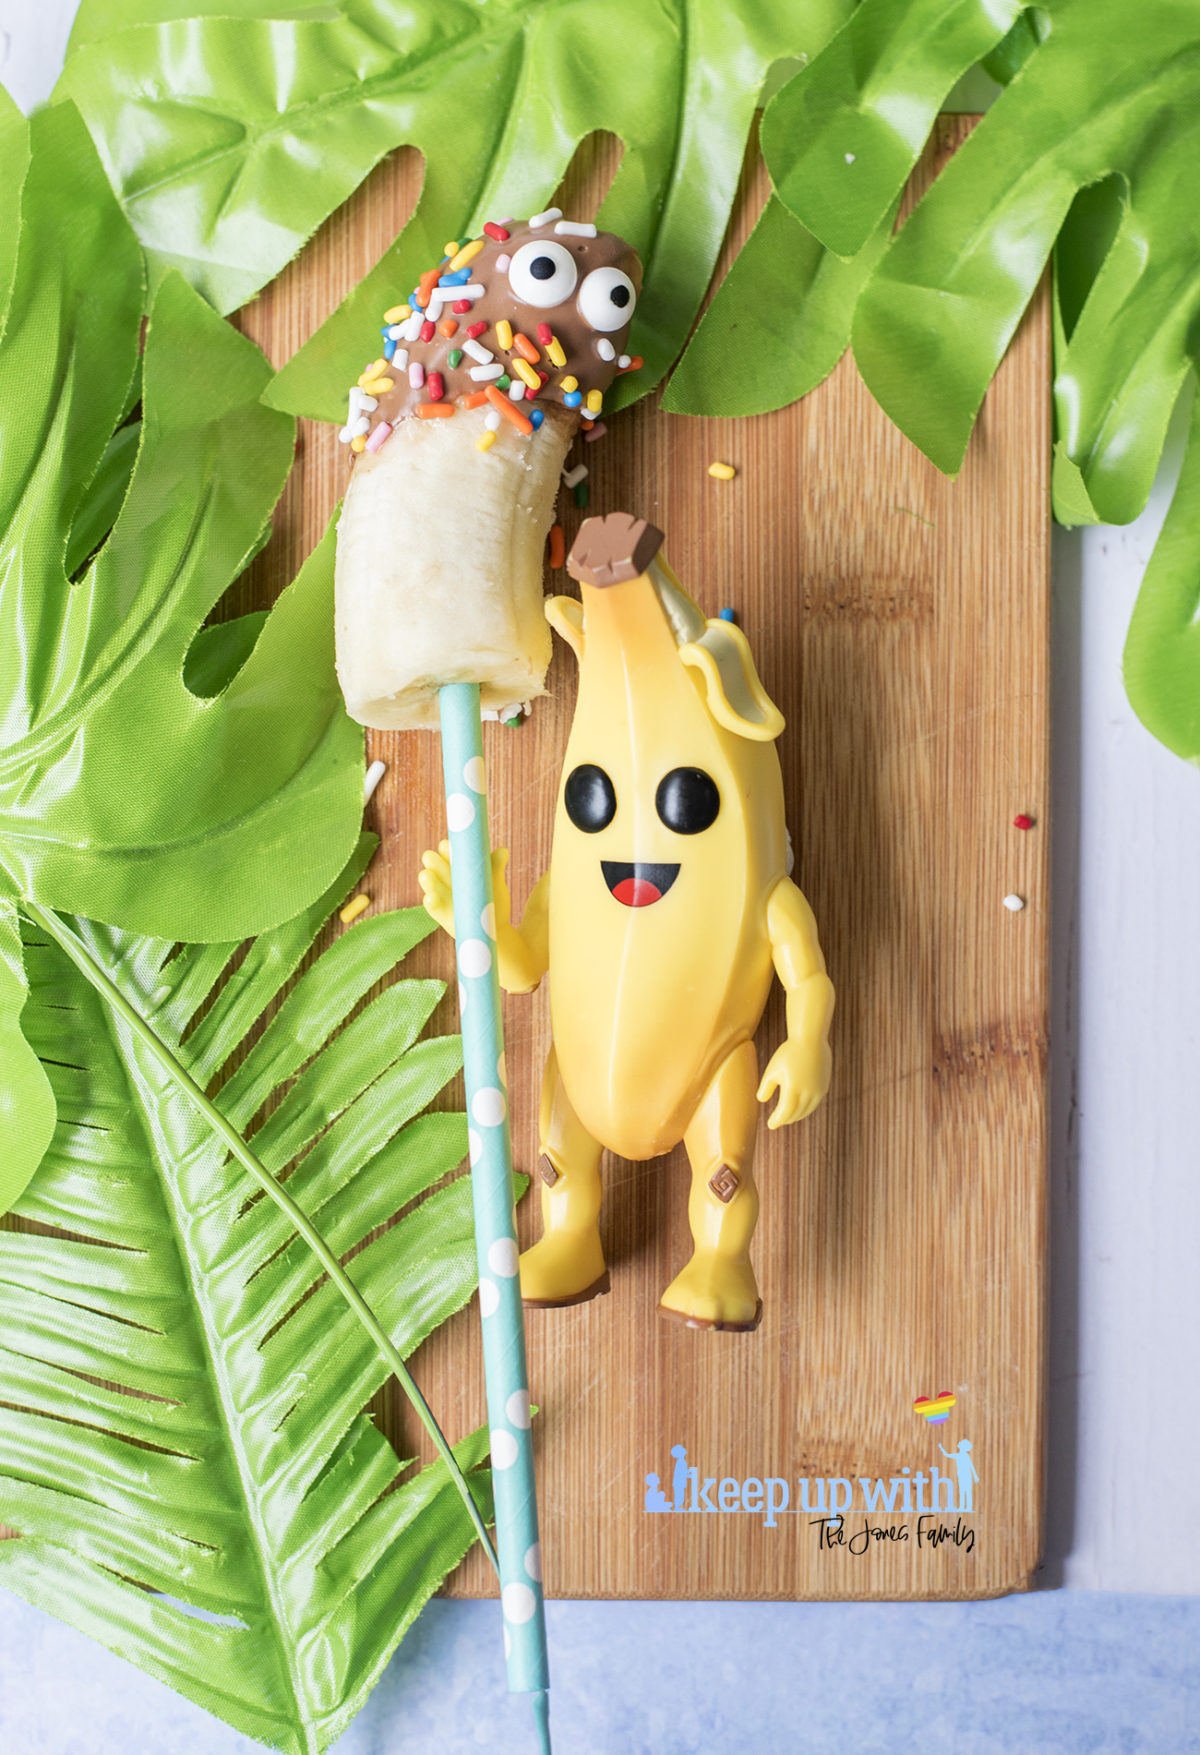 Image shows Peely's Banana Fortnite Fondue Bar, fun food for families. A Funko Pop Vinyl Peely lies on a wooden board, holding a bands covered in chocolate, sprinkles and edible eyes. Image by Sara-Jayne from Keep Up With The Jones Family.